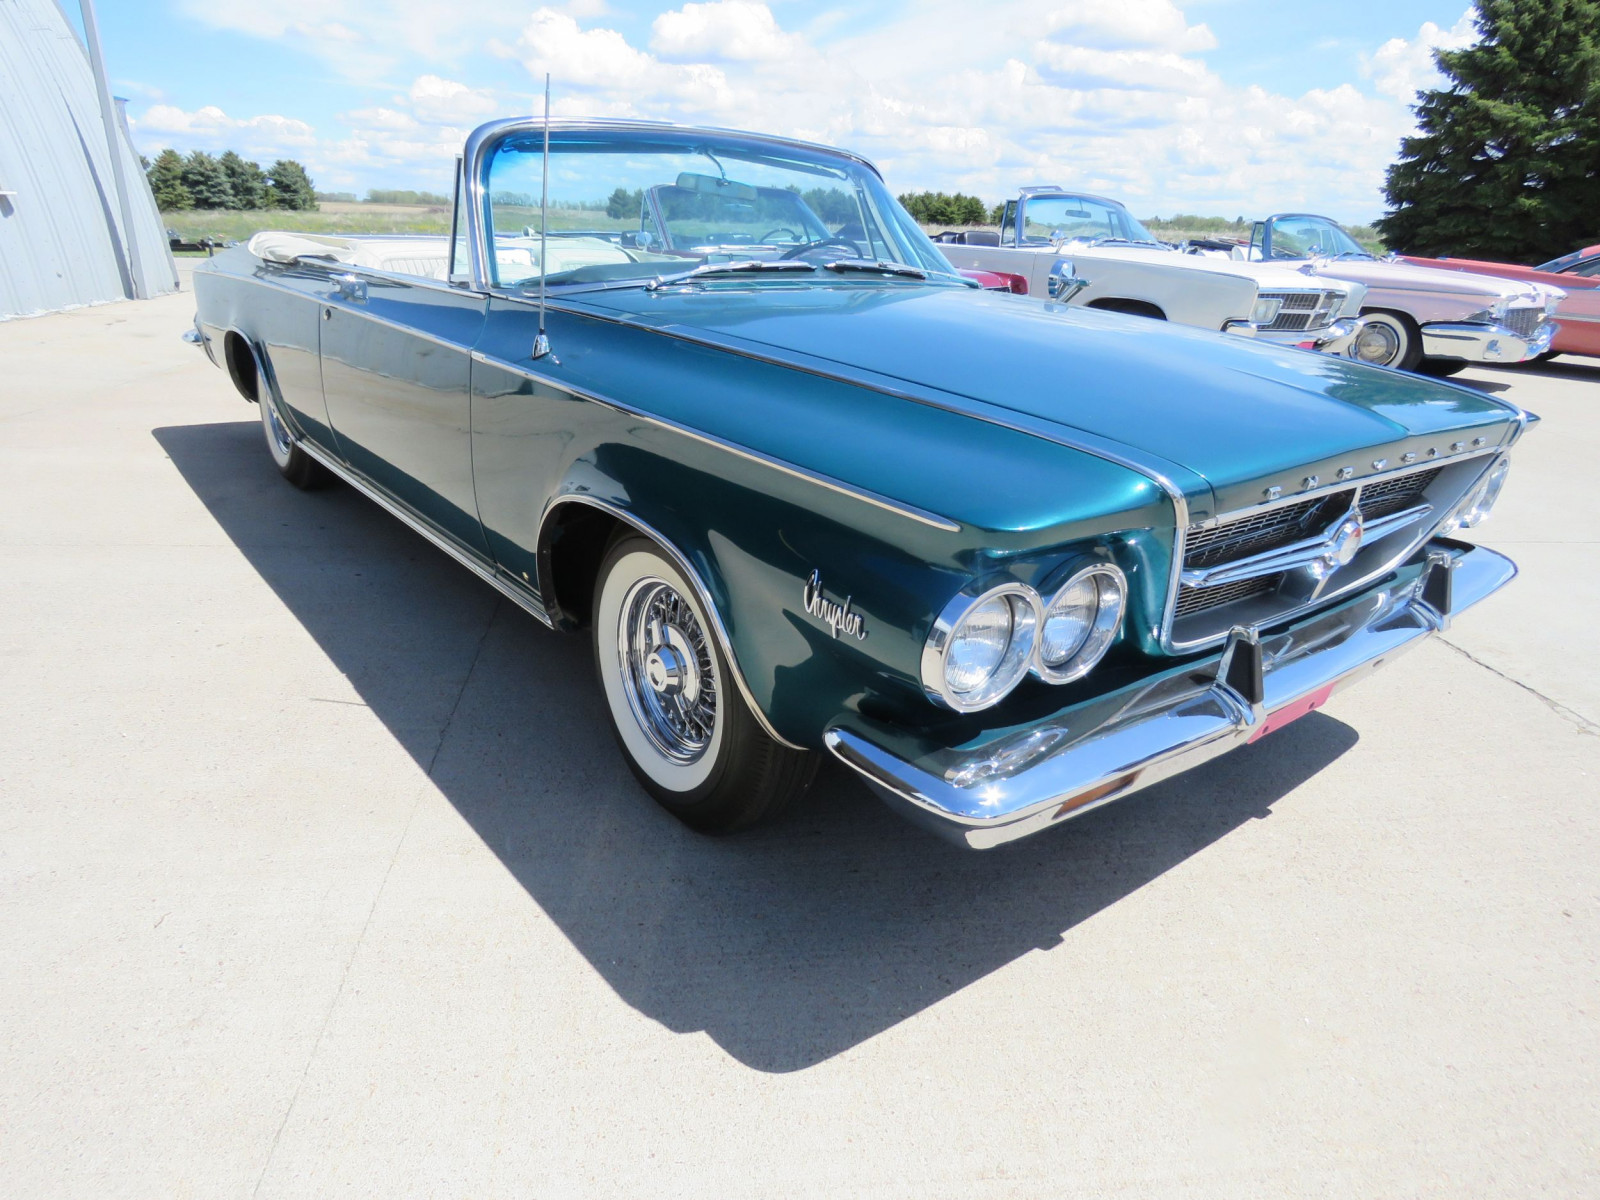 RARE 1963 Chrysler 300 Pace Setter Convertible Indy 500 Pace car - Image 3